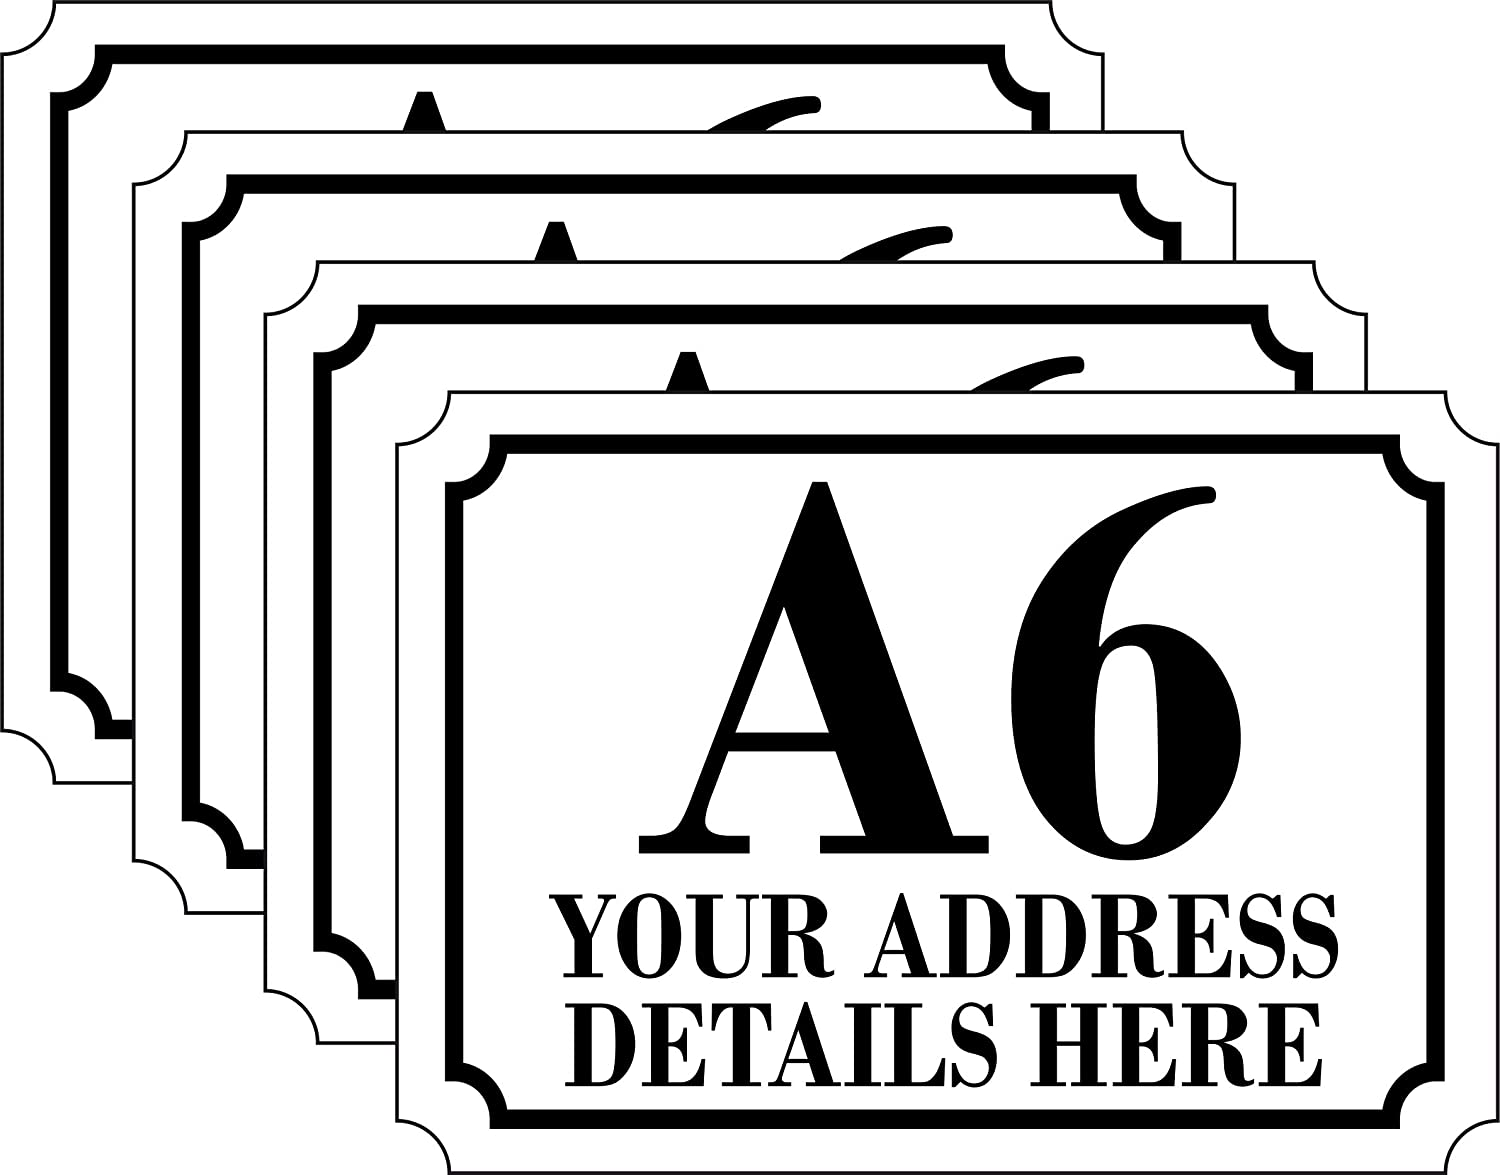 The Lazy Cow Personalised Printed Wheelie Bin Number Stickers with number and road Name A4 CUSTOM BIN LABELS A4 Vinyl Waste Container Decals set of 4 1